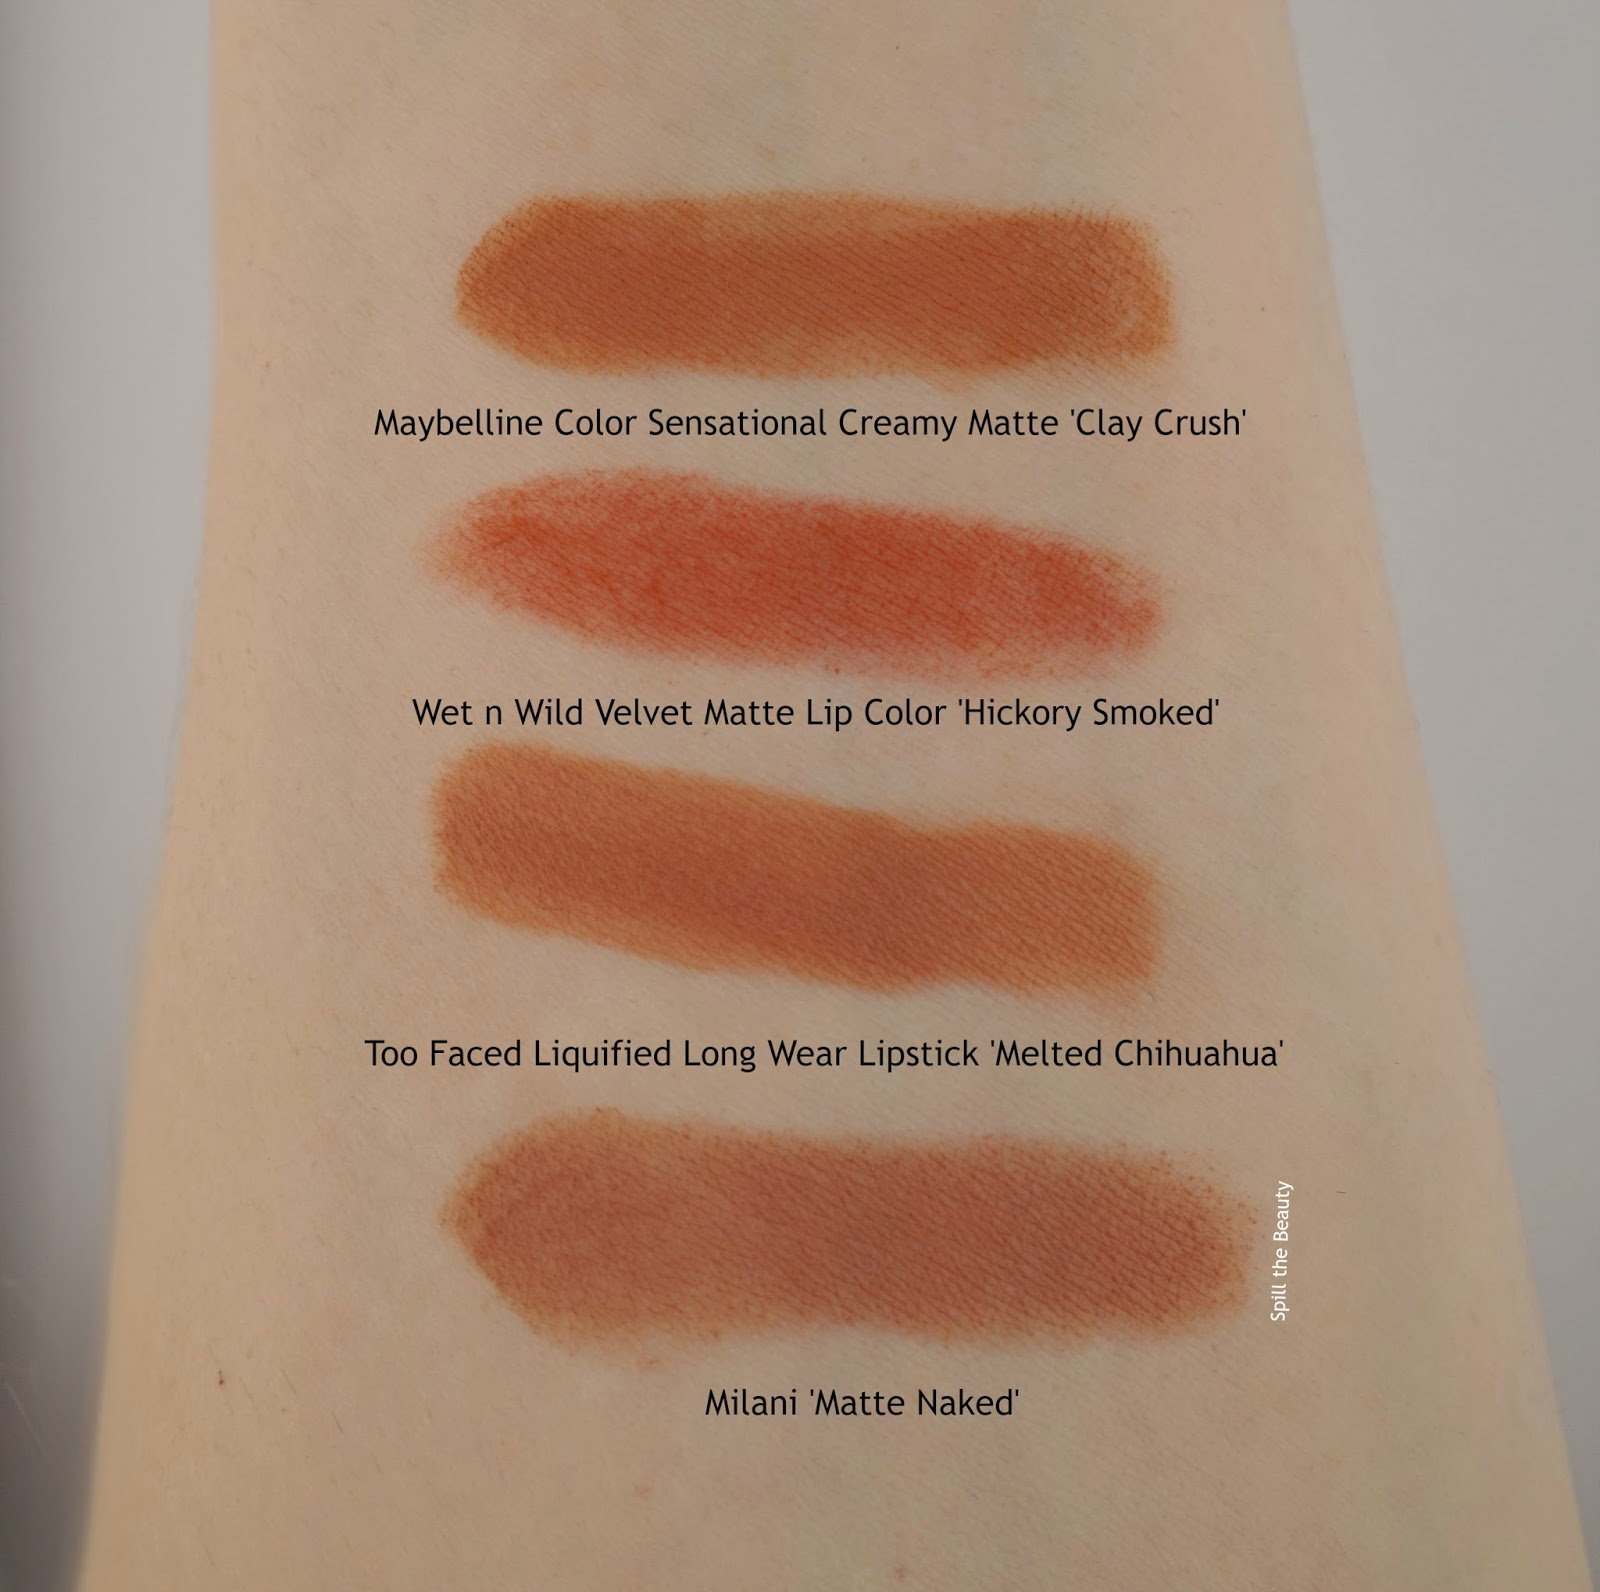 Too Faced Melted Chihuahua Review swatchescomparison drugstore dupe maybelline wet n wild milani